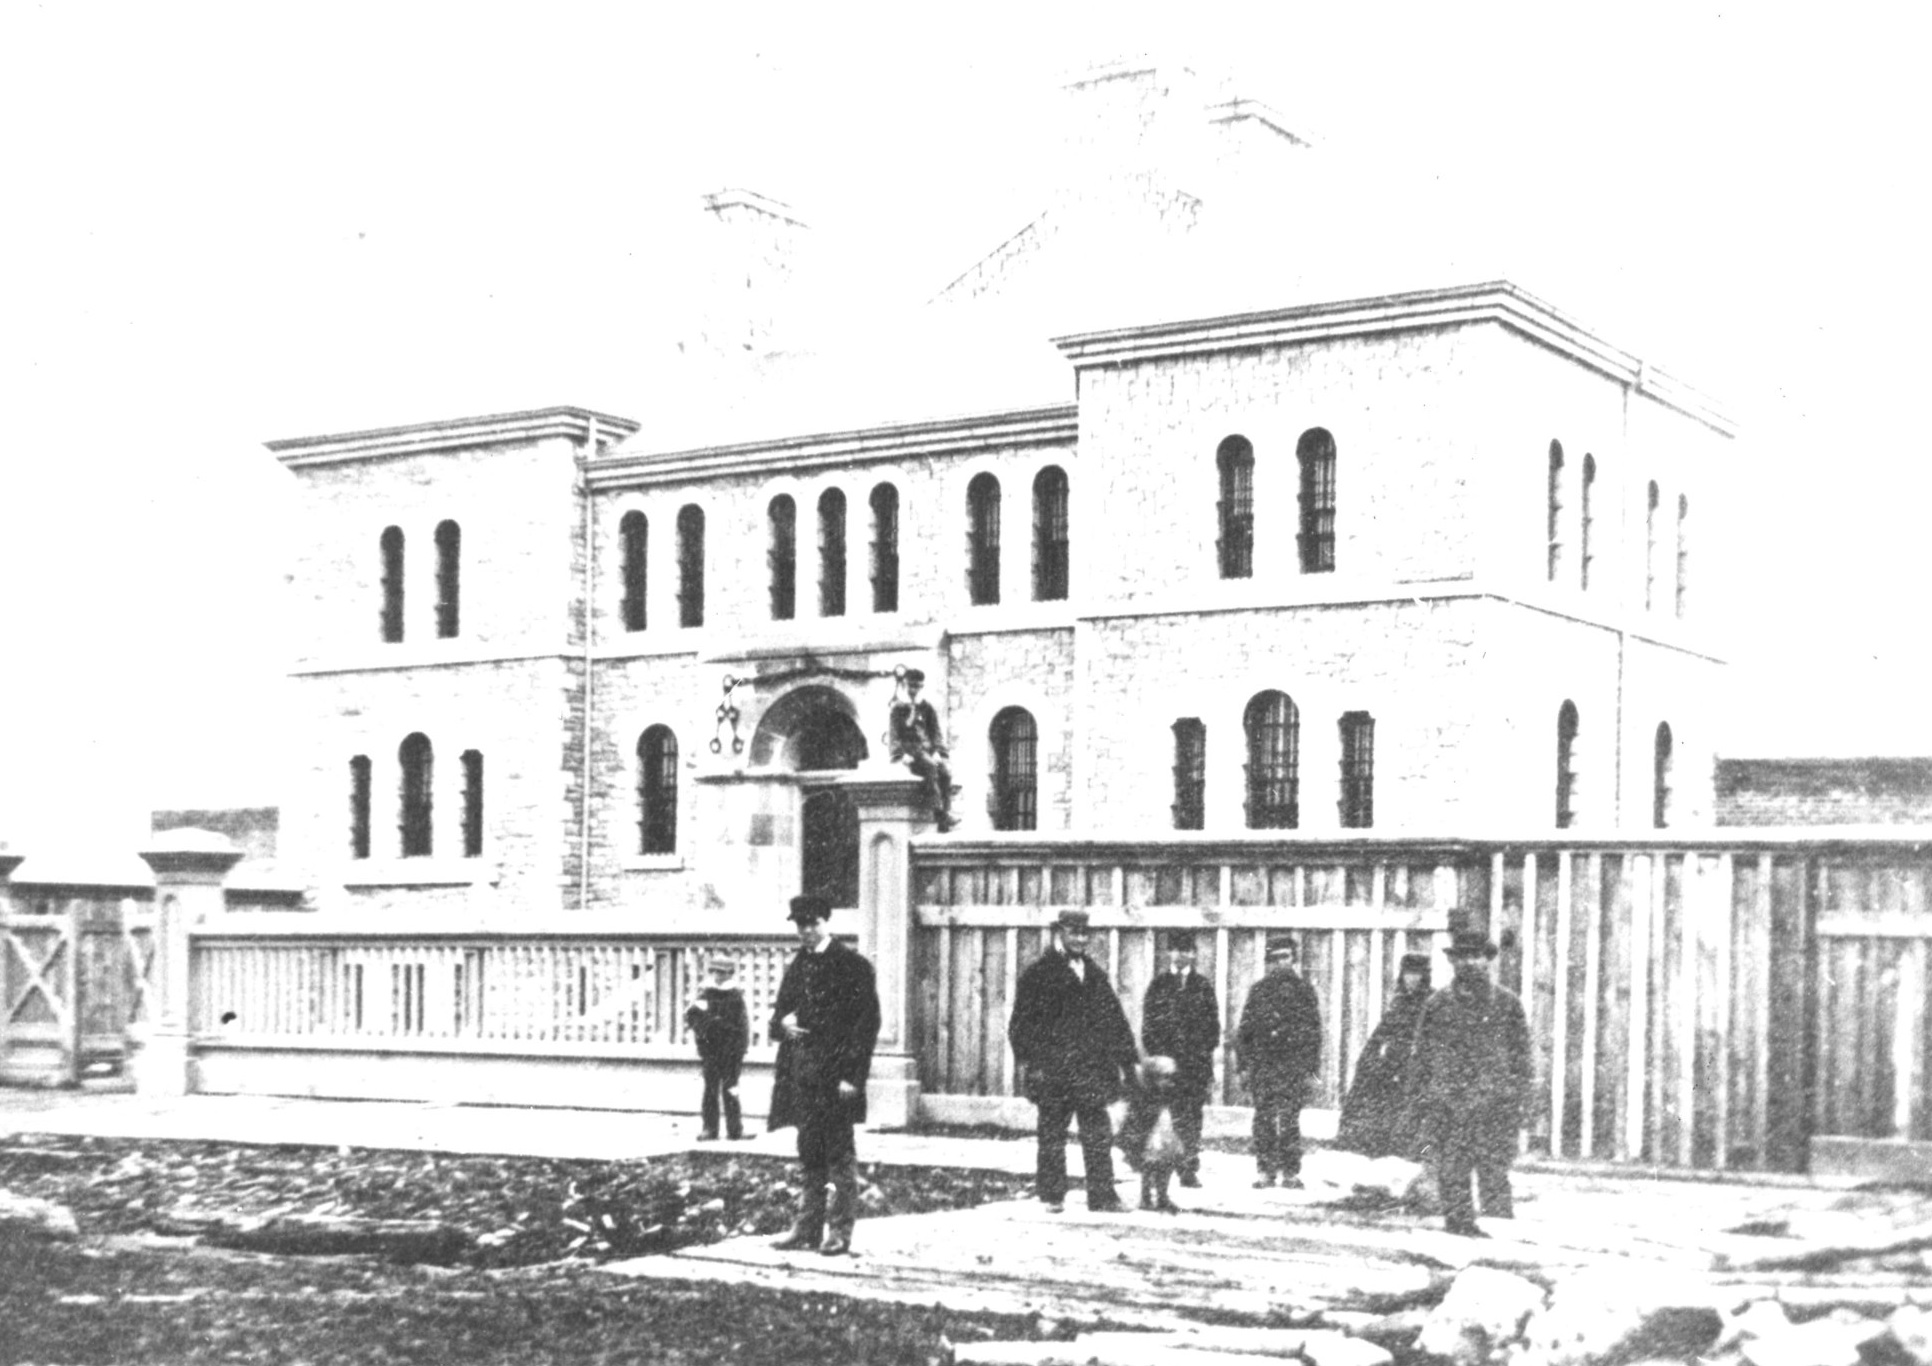 Photo of Gaol taken circa 1865